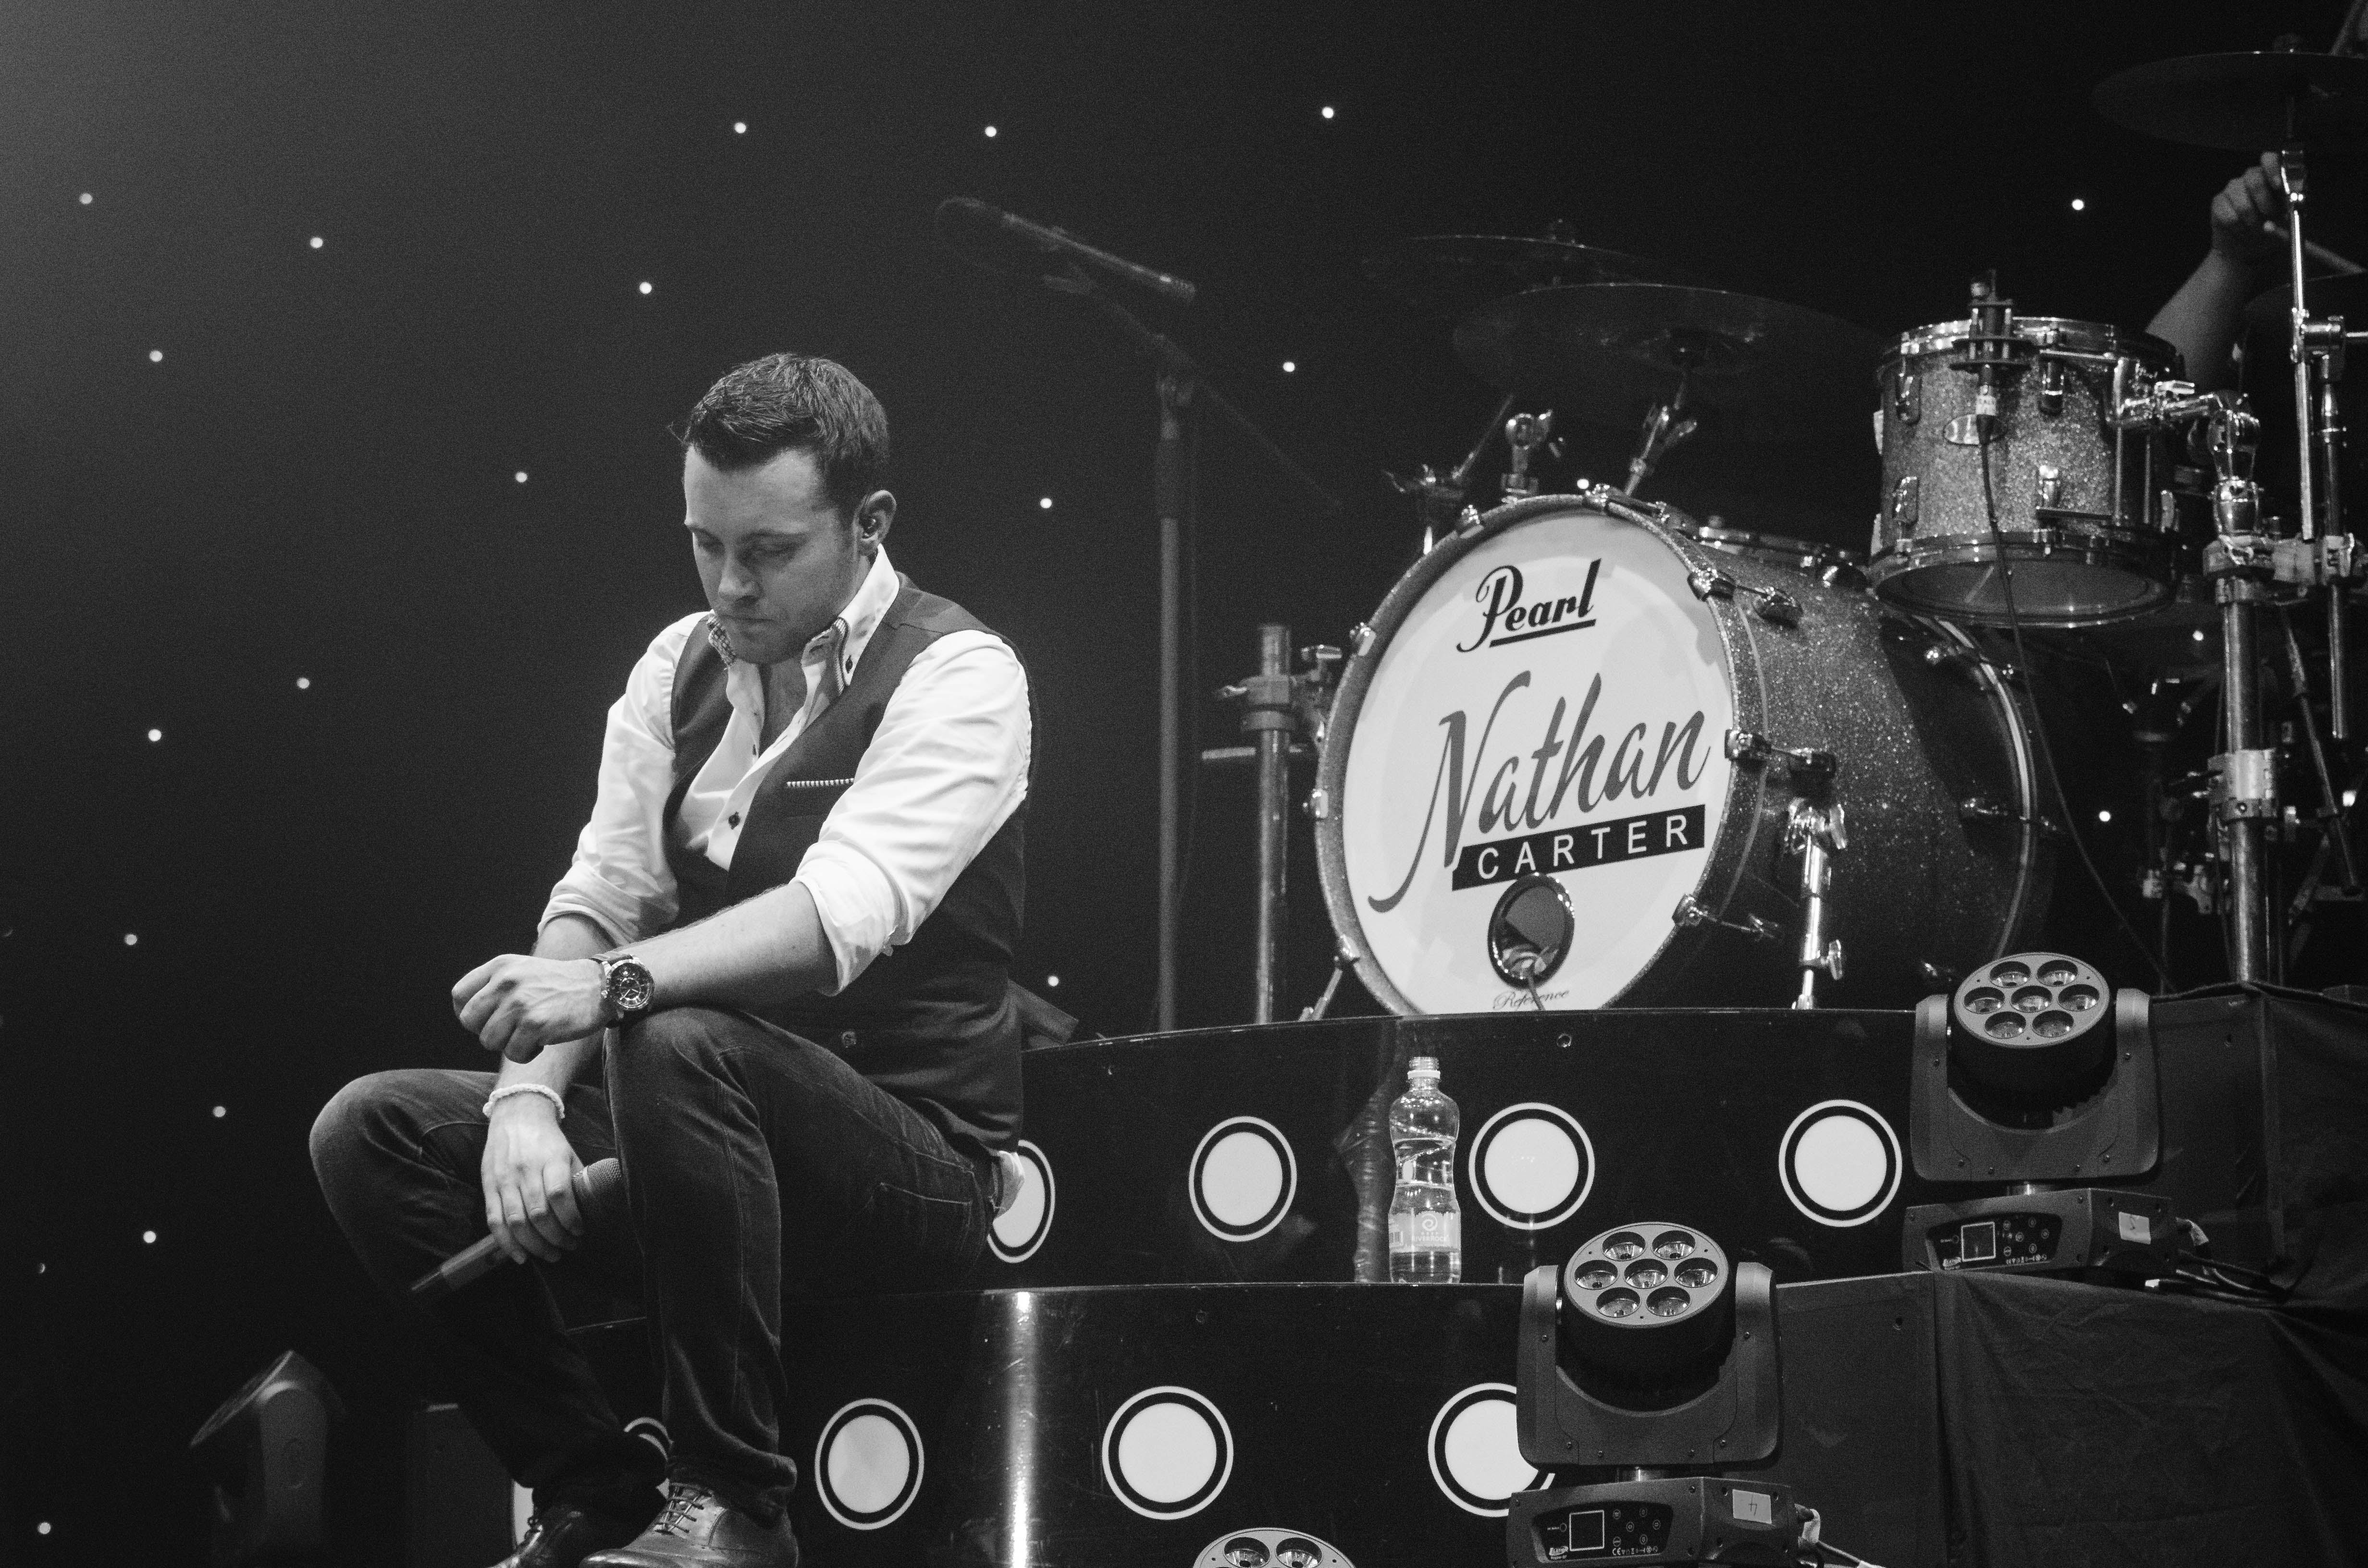 nathan-carter-at-the-marquee-cork-by-sean-smyth-15-6-14-35-of-55